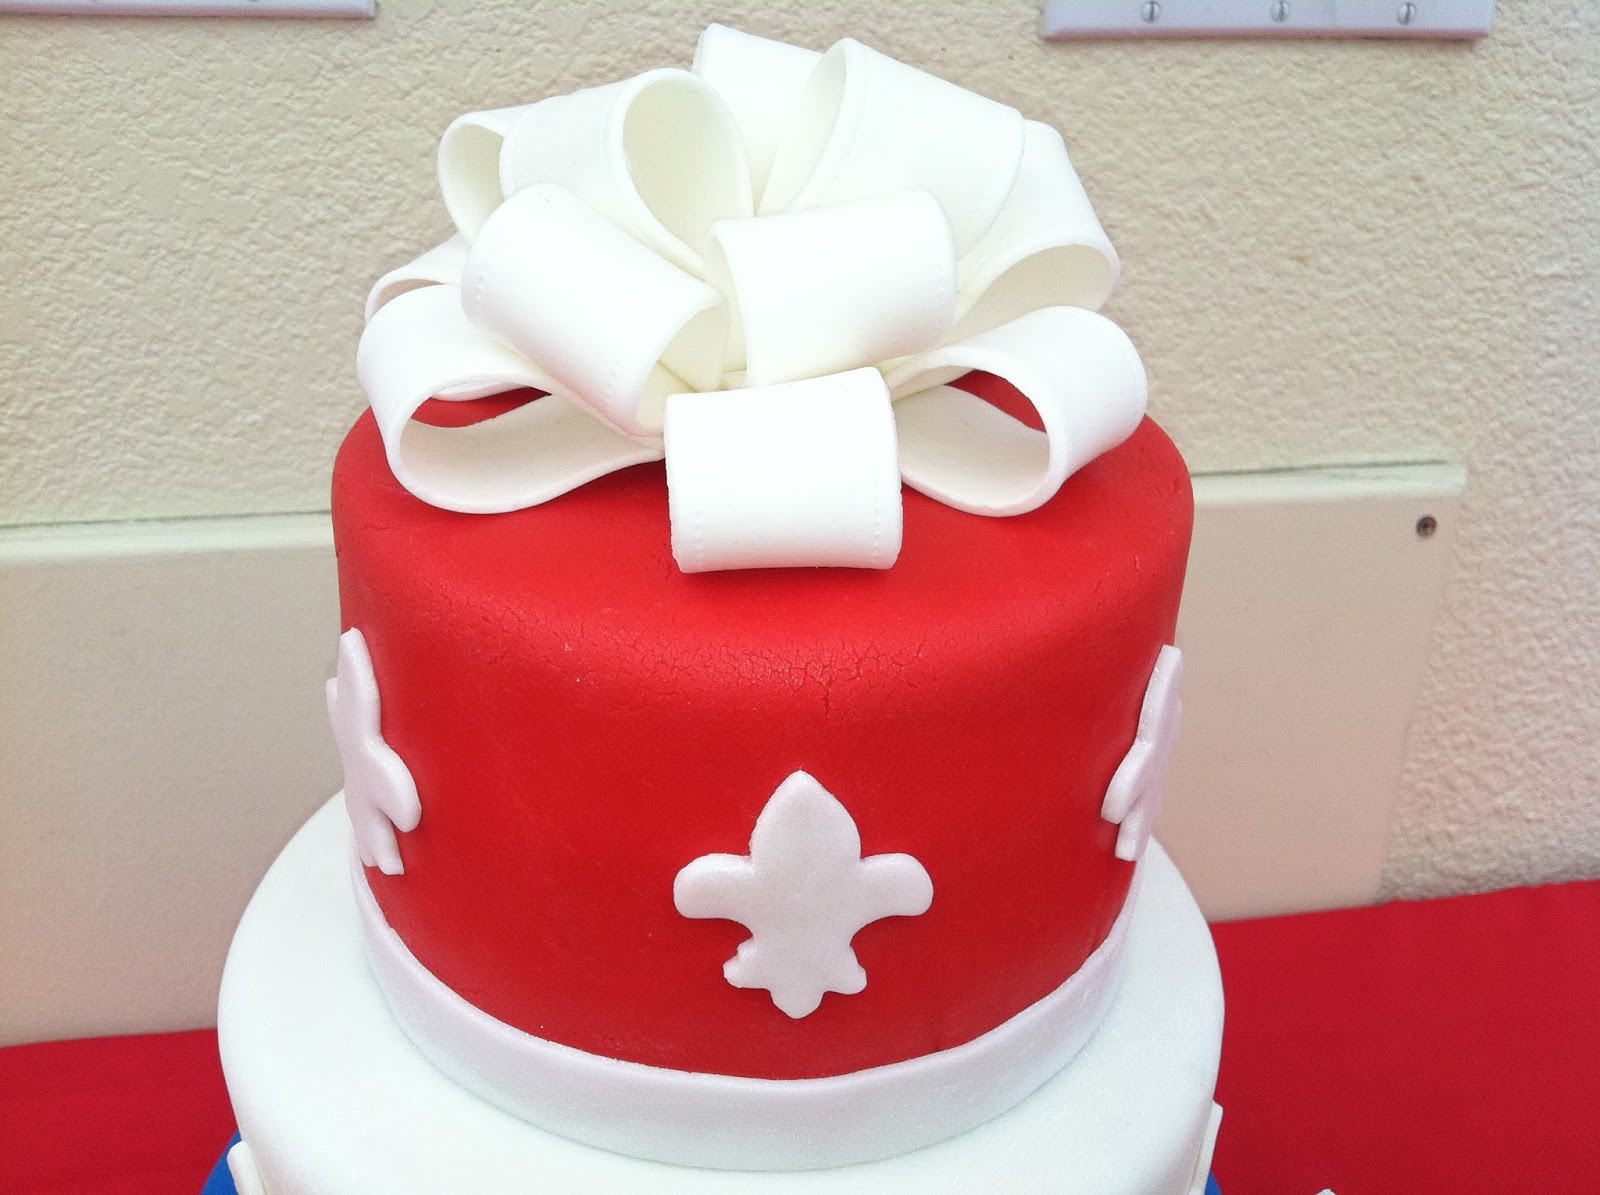 The Iced Queen: Coloring Fondant Red